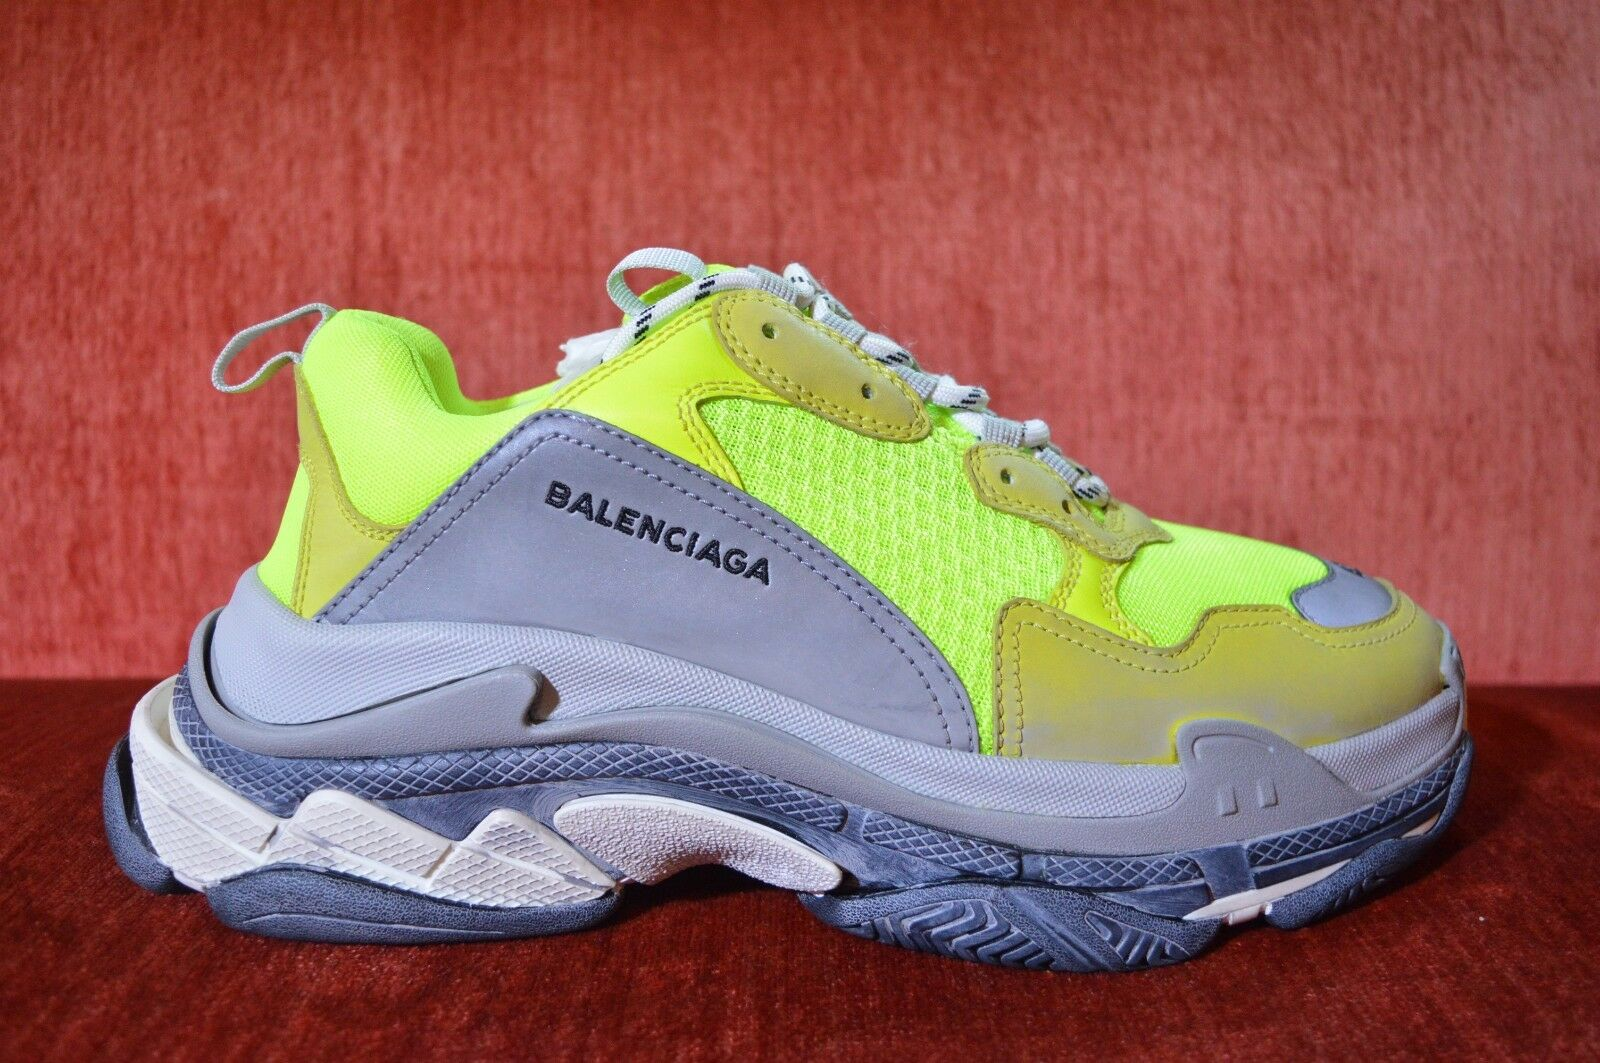 NEW Balenciaga Triple S Neon Yellow US 10 2018 Reissue SSS